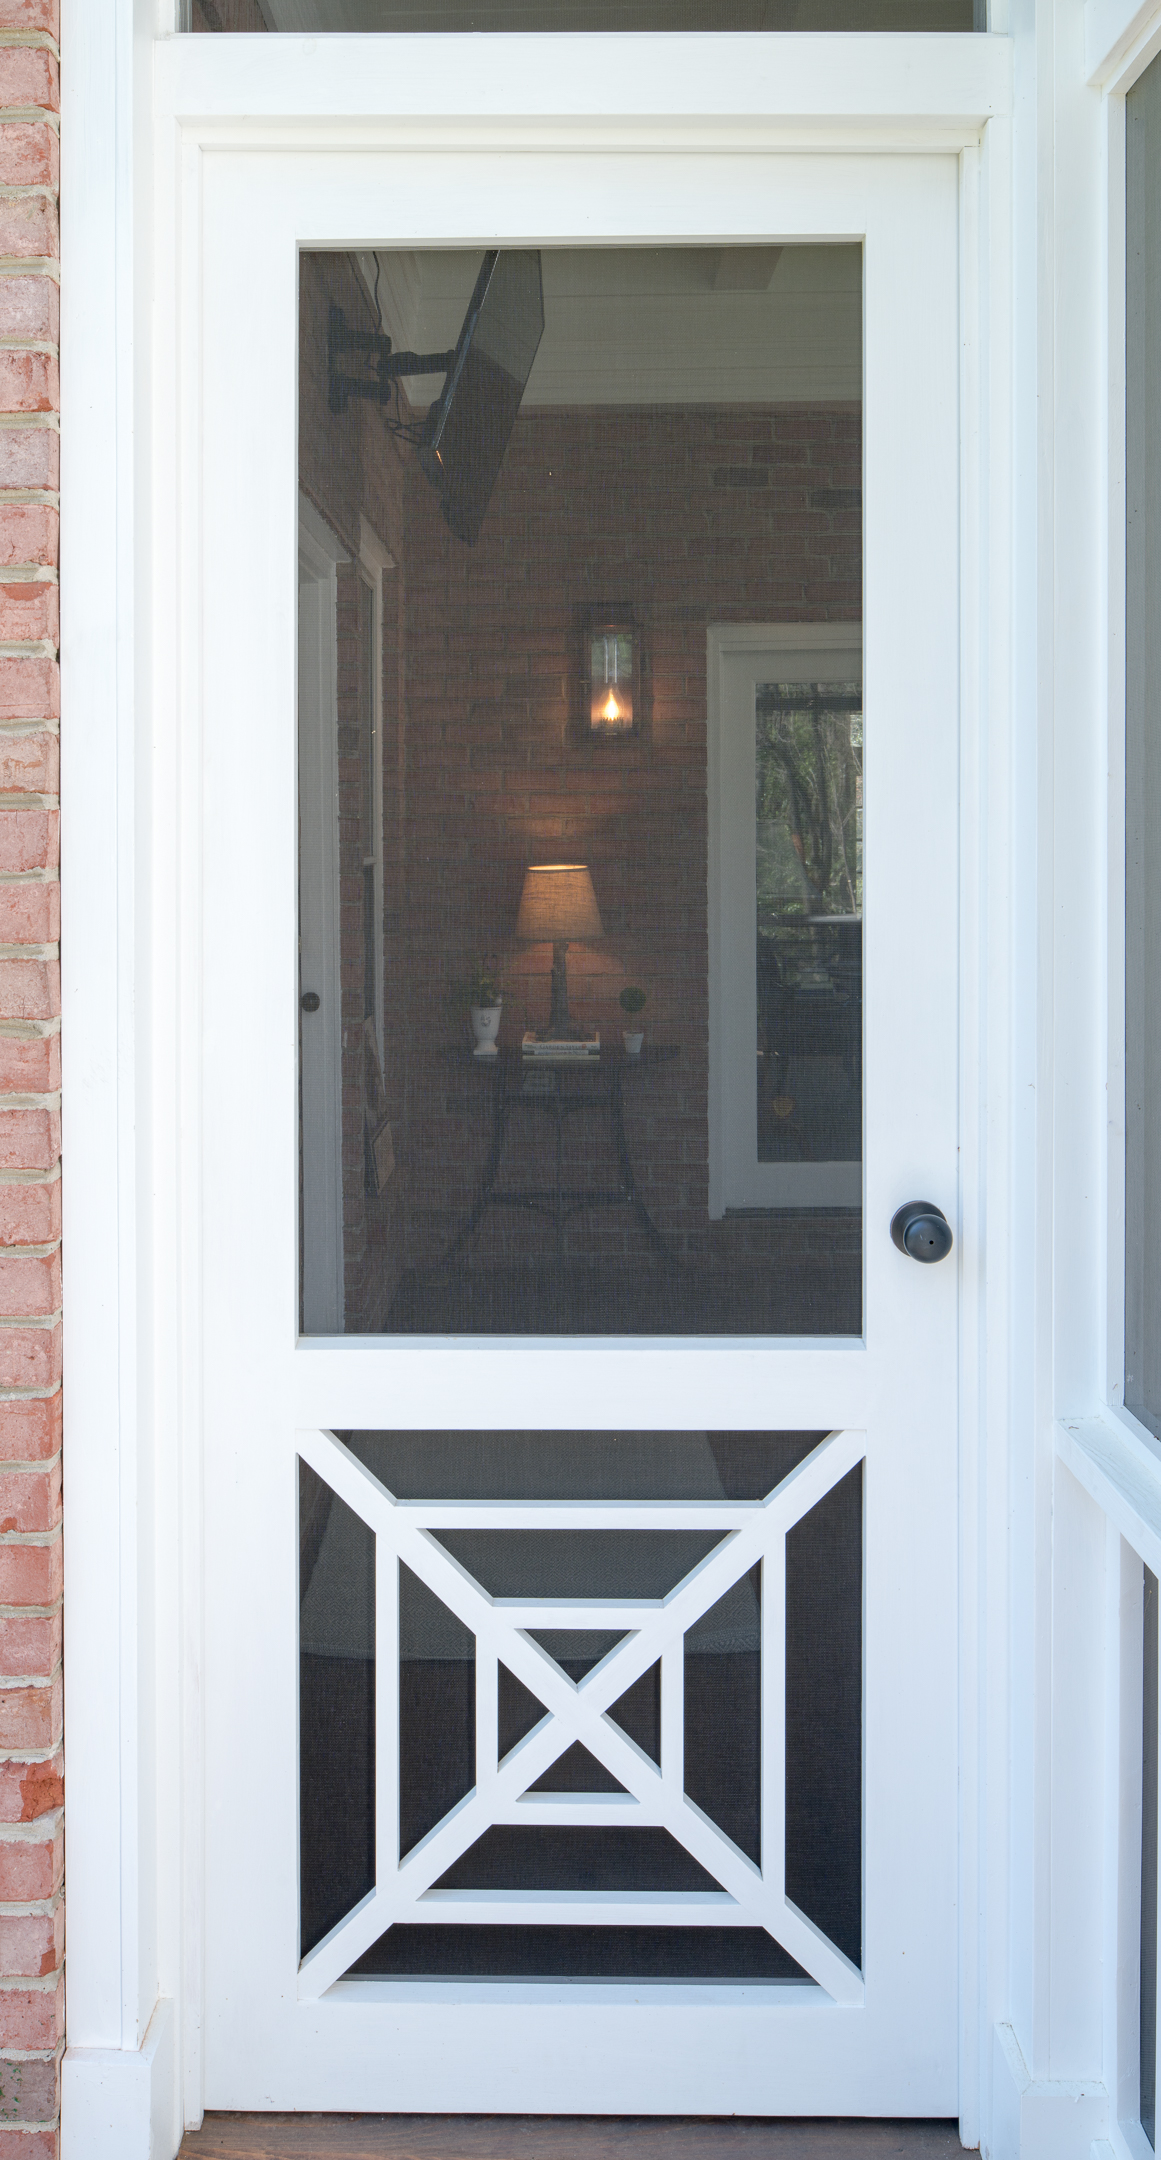 Southern Cross Single Screen Door The Porch Companythe Porch Company